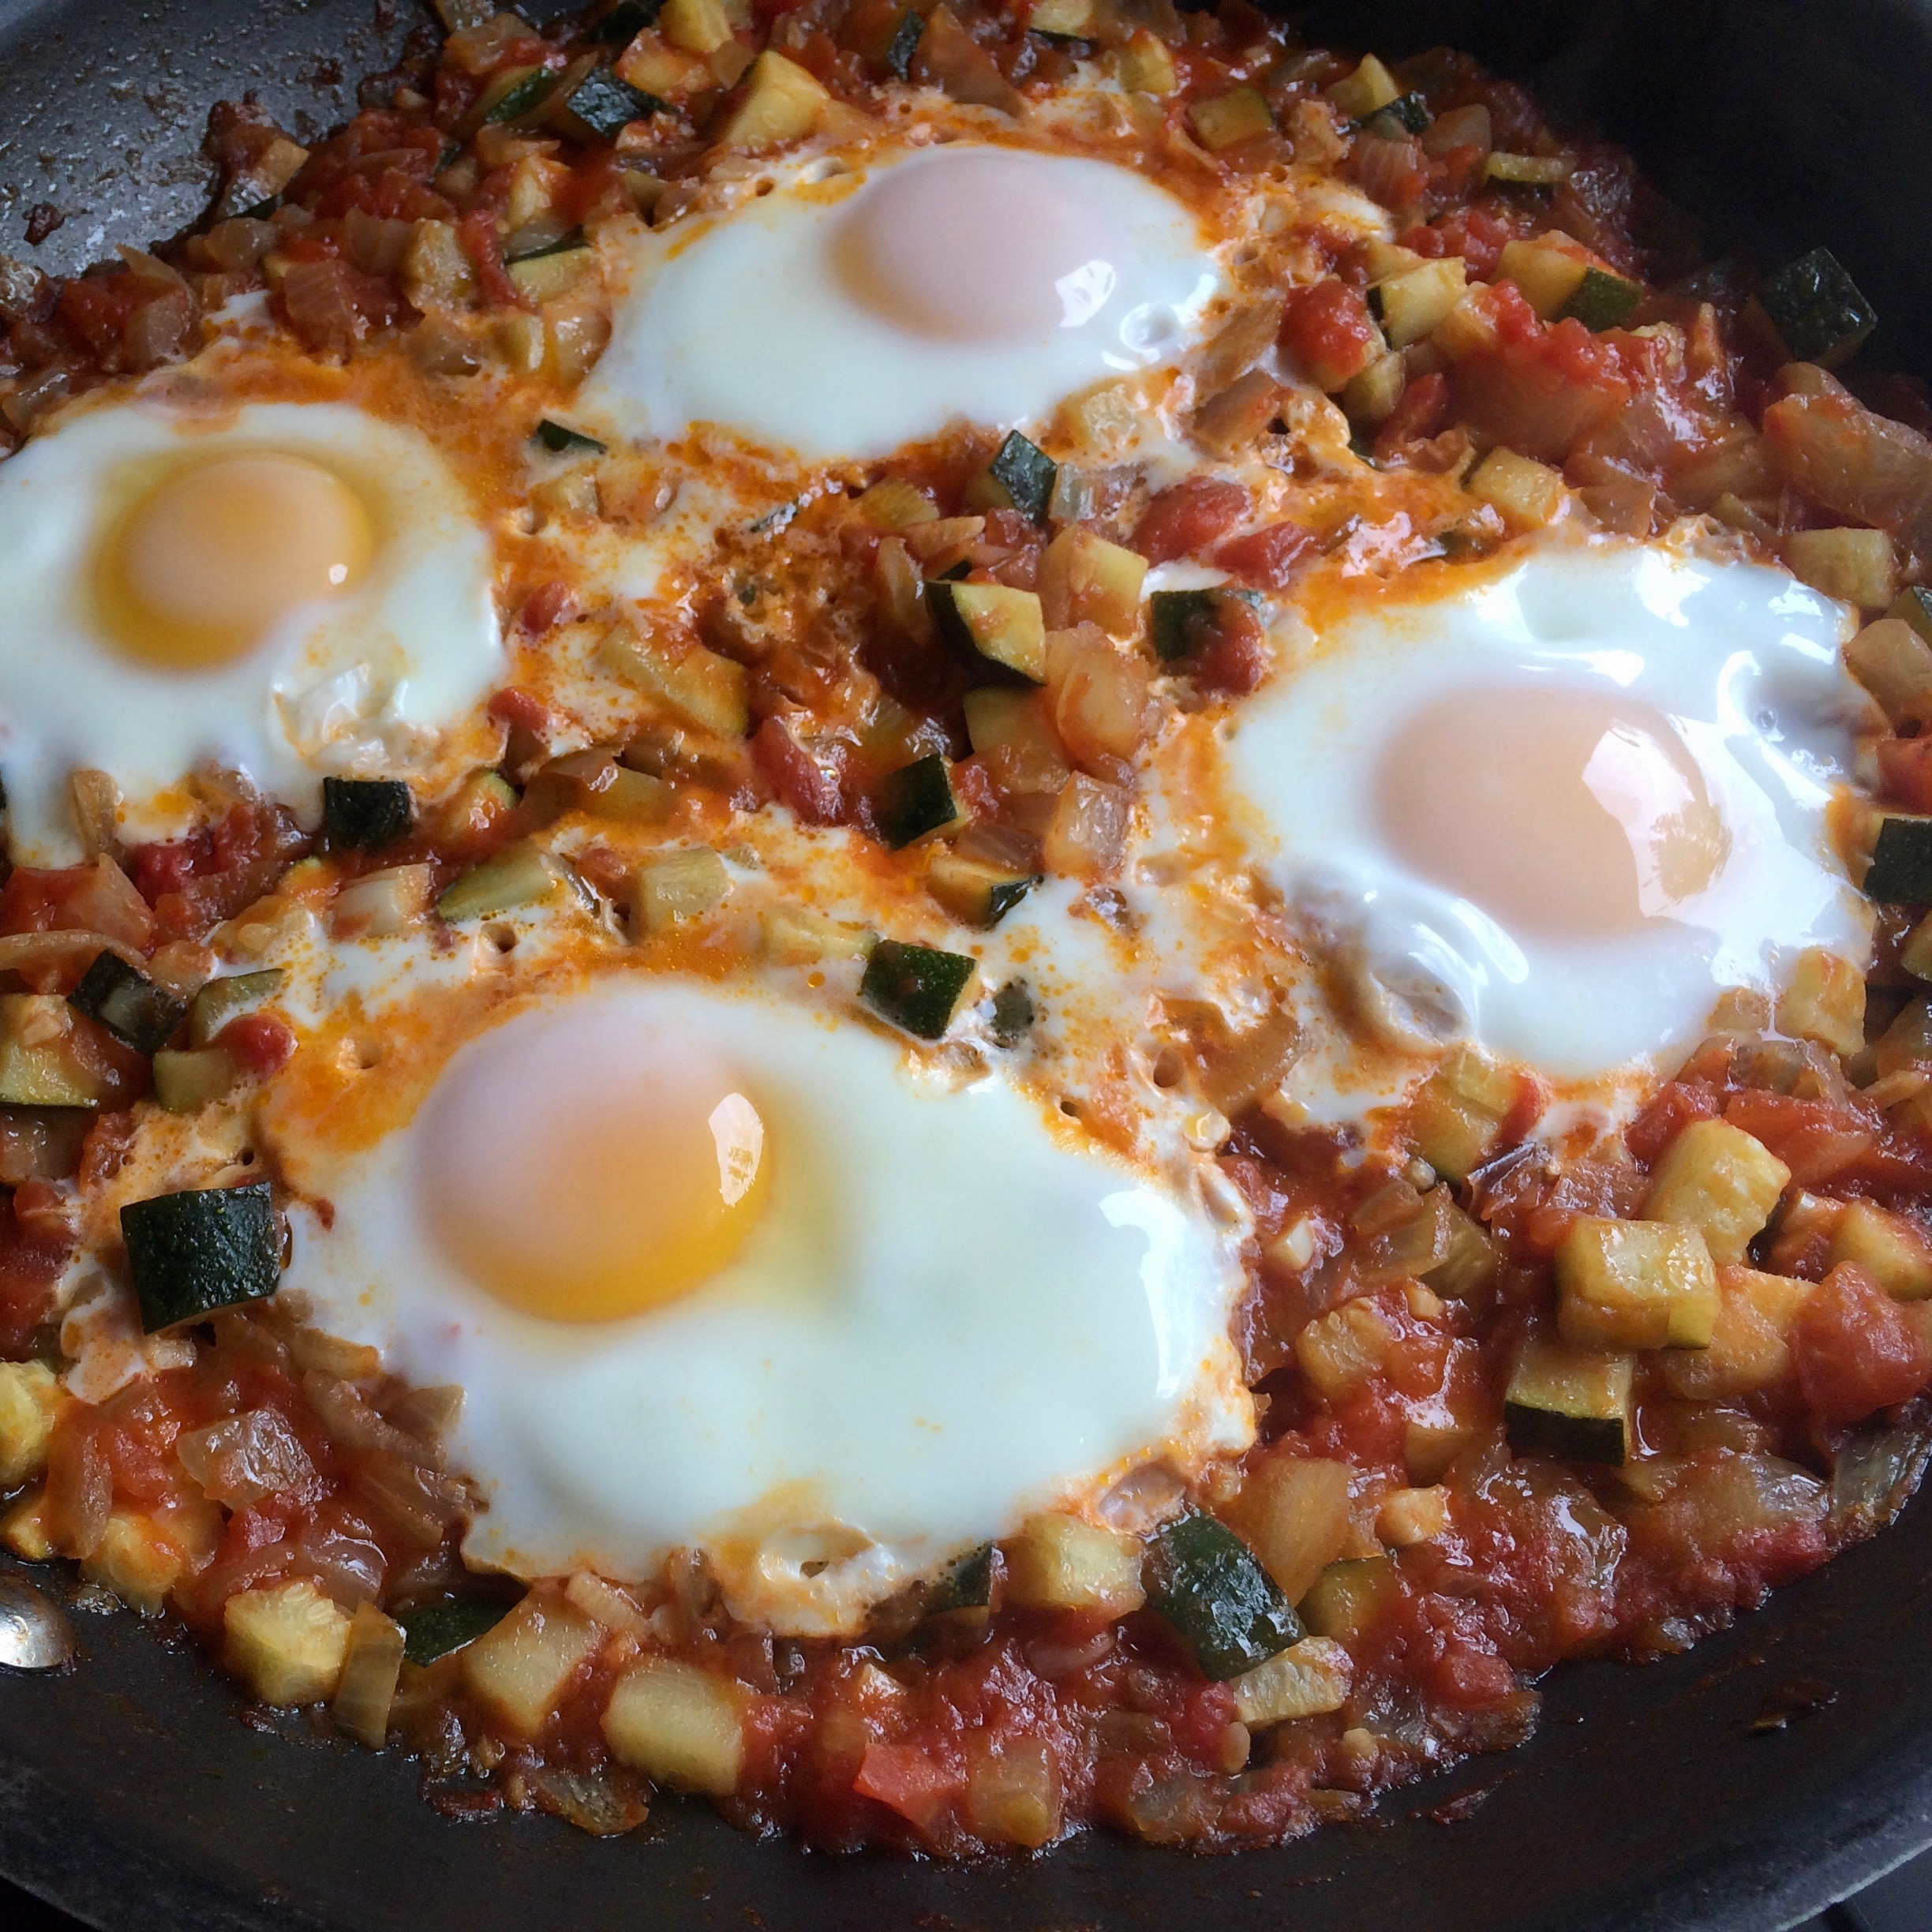 Shakshuka (Middle Eastern Breakfast Dish)